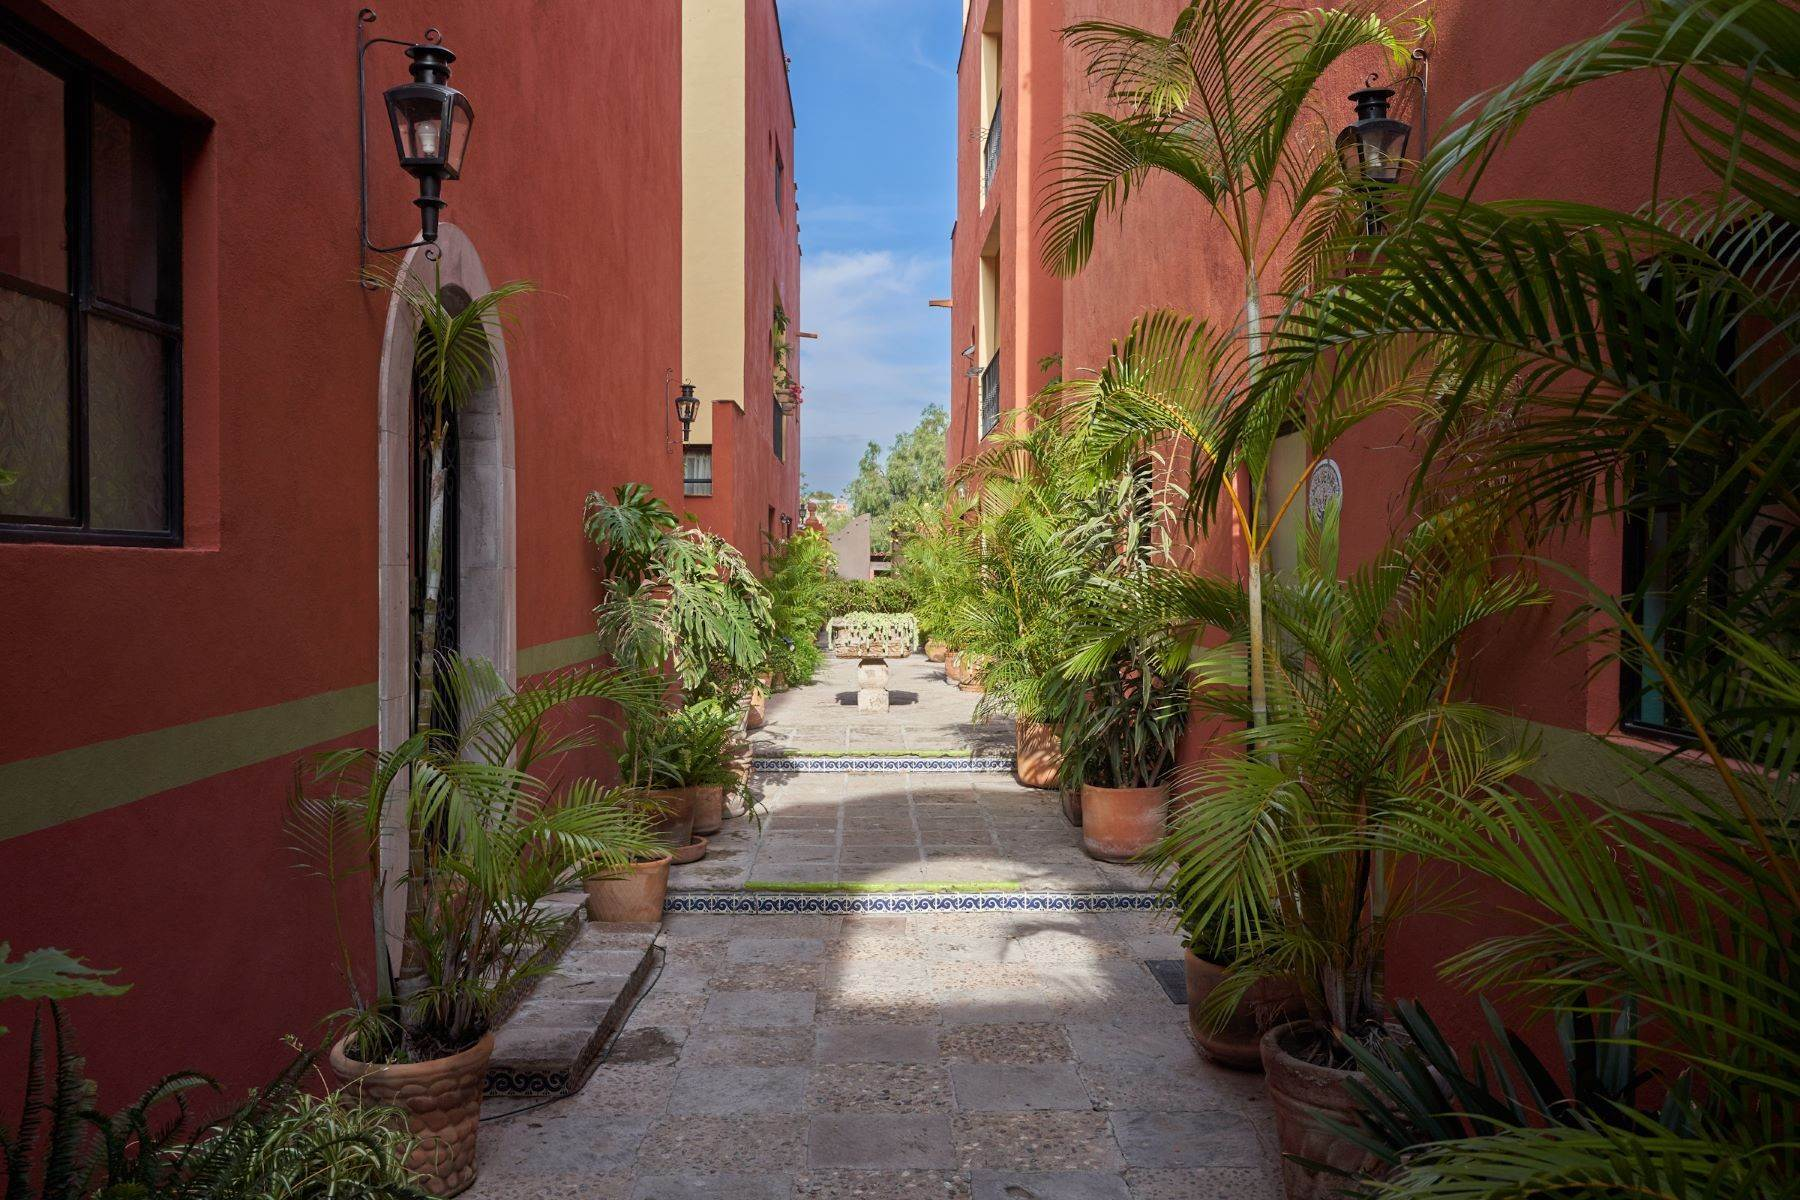 Single Family Homes for Sale at Casa Alameda Alameda 1E #3, Colonia San Antonio San Miguel De Allende, Guanajuato 37750 Mexico